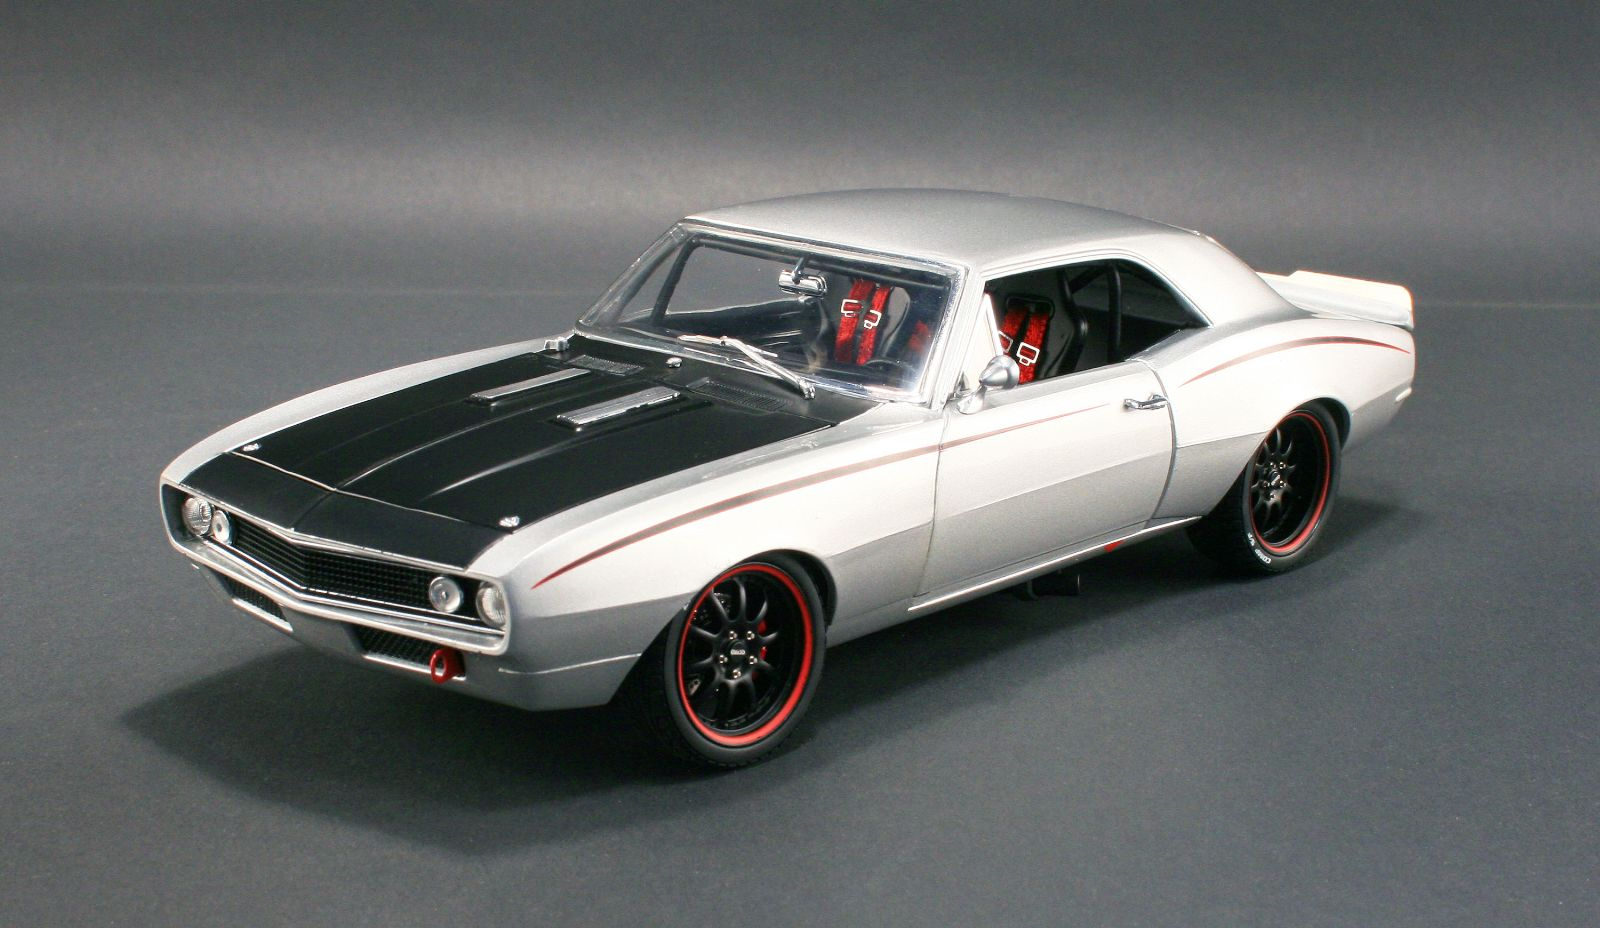 18806 - 1:18 GMP - 1:18 1967 Chevrolet Camaro - Street Fighter